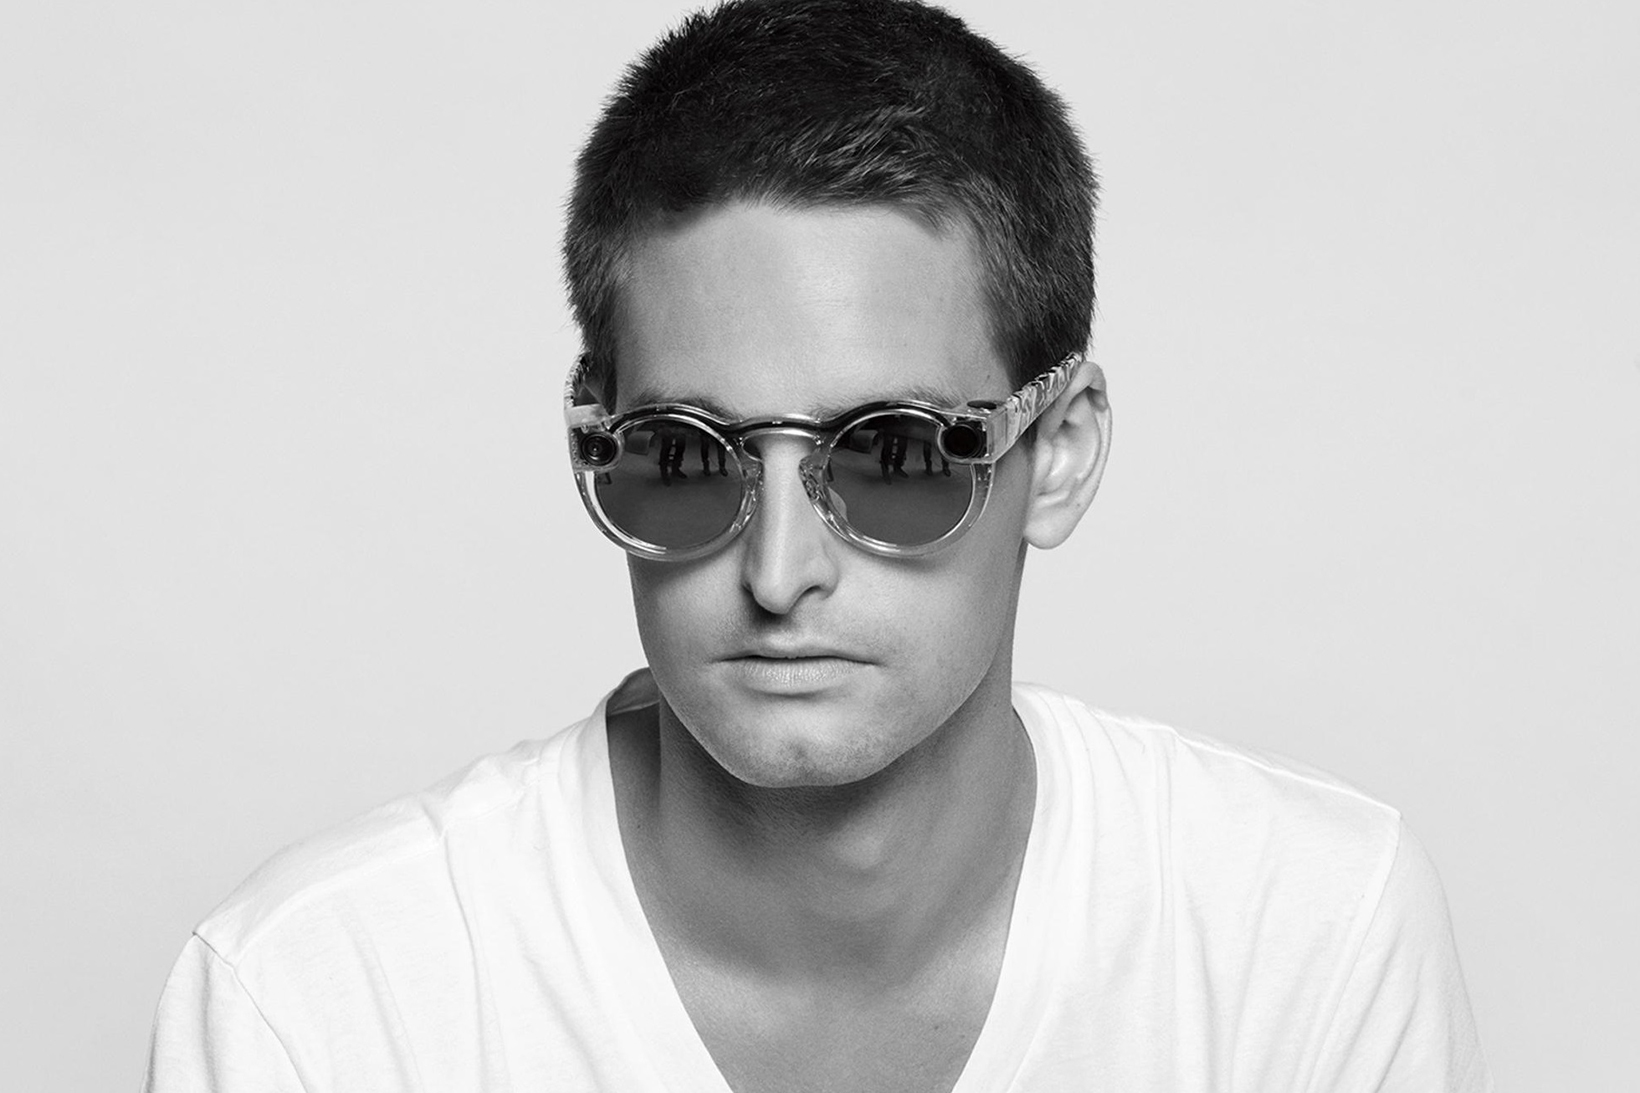 Wearable Tech and Fashion Snapchat Spectacles Evan Spiegel Karl Lagerfeld